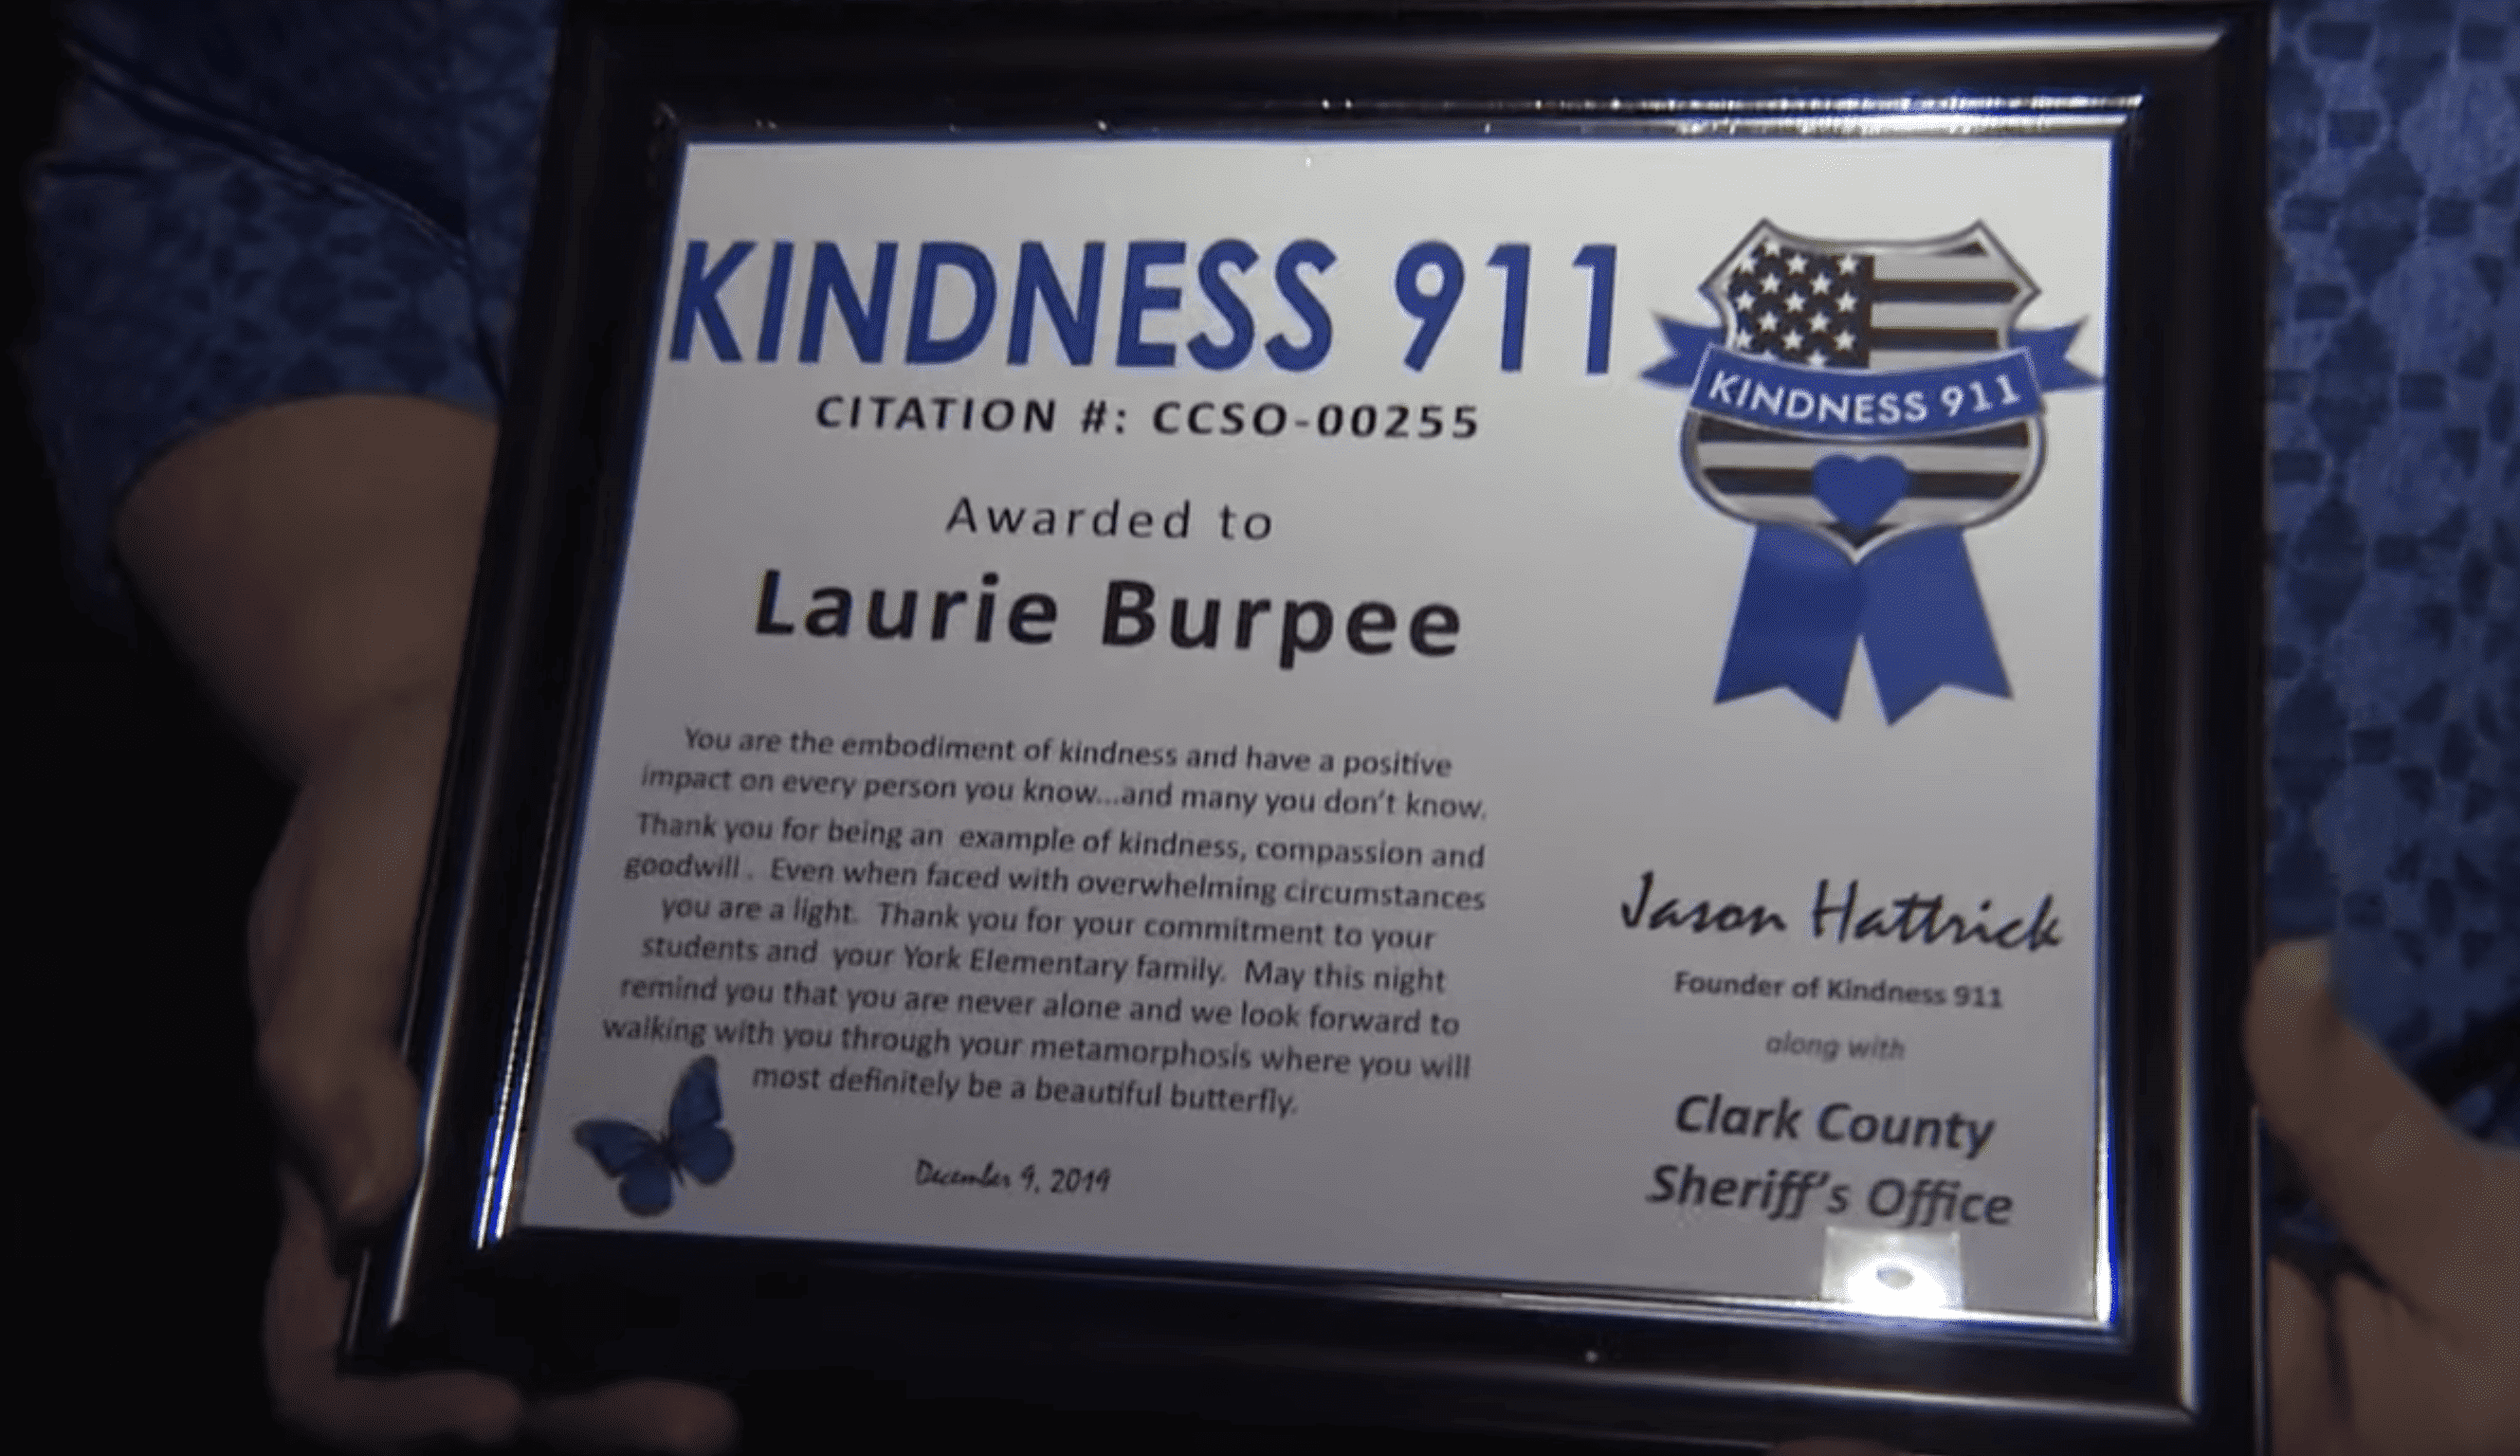 """""""Kindness 911""""  kindness citation awarded to Laurie Burpee in Vancouver, Washington 